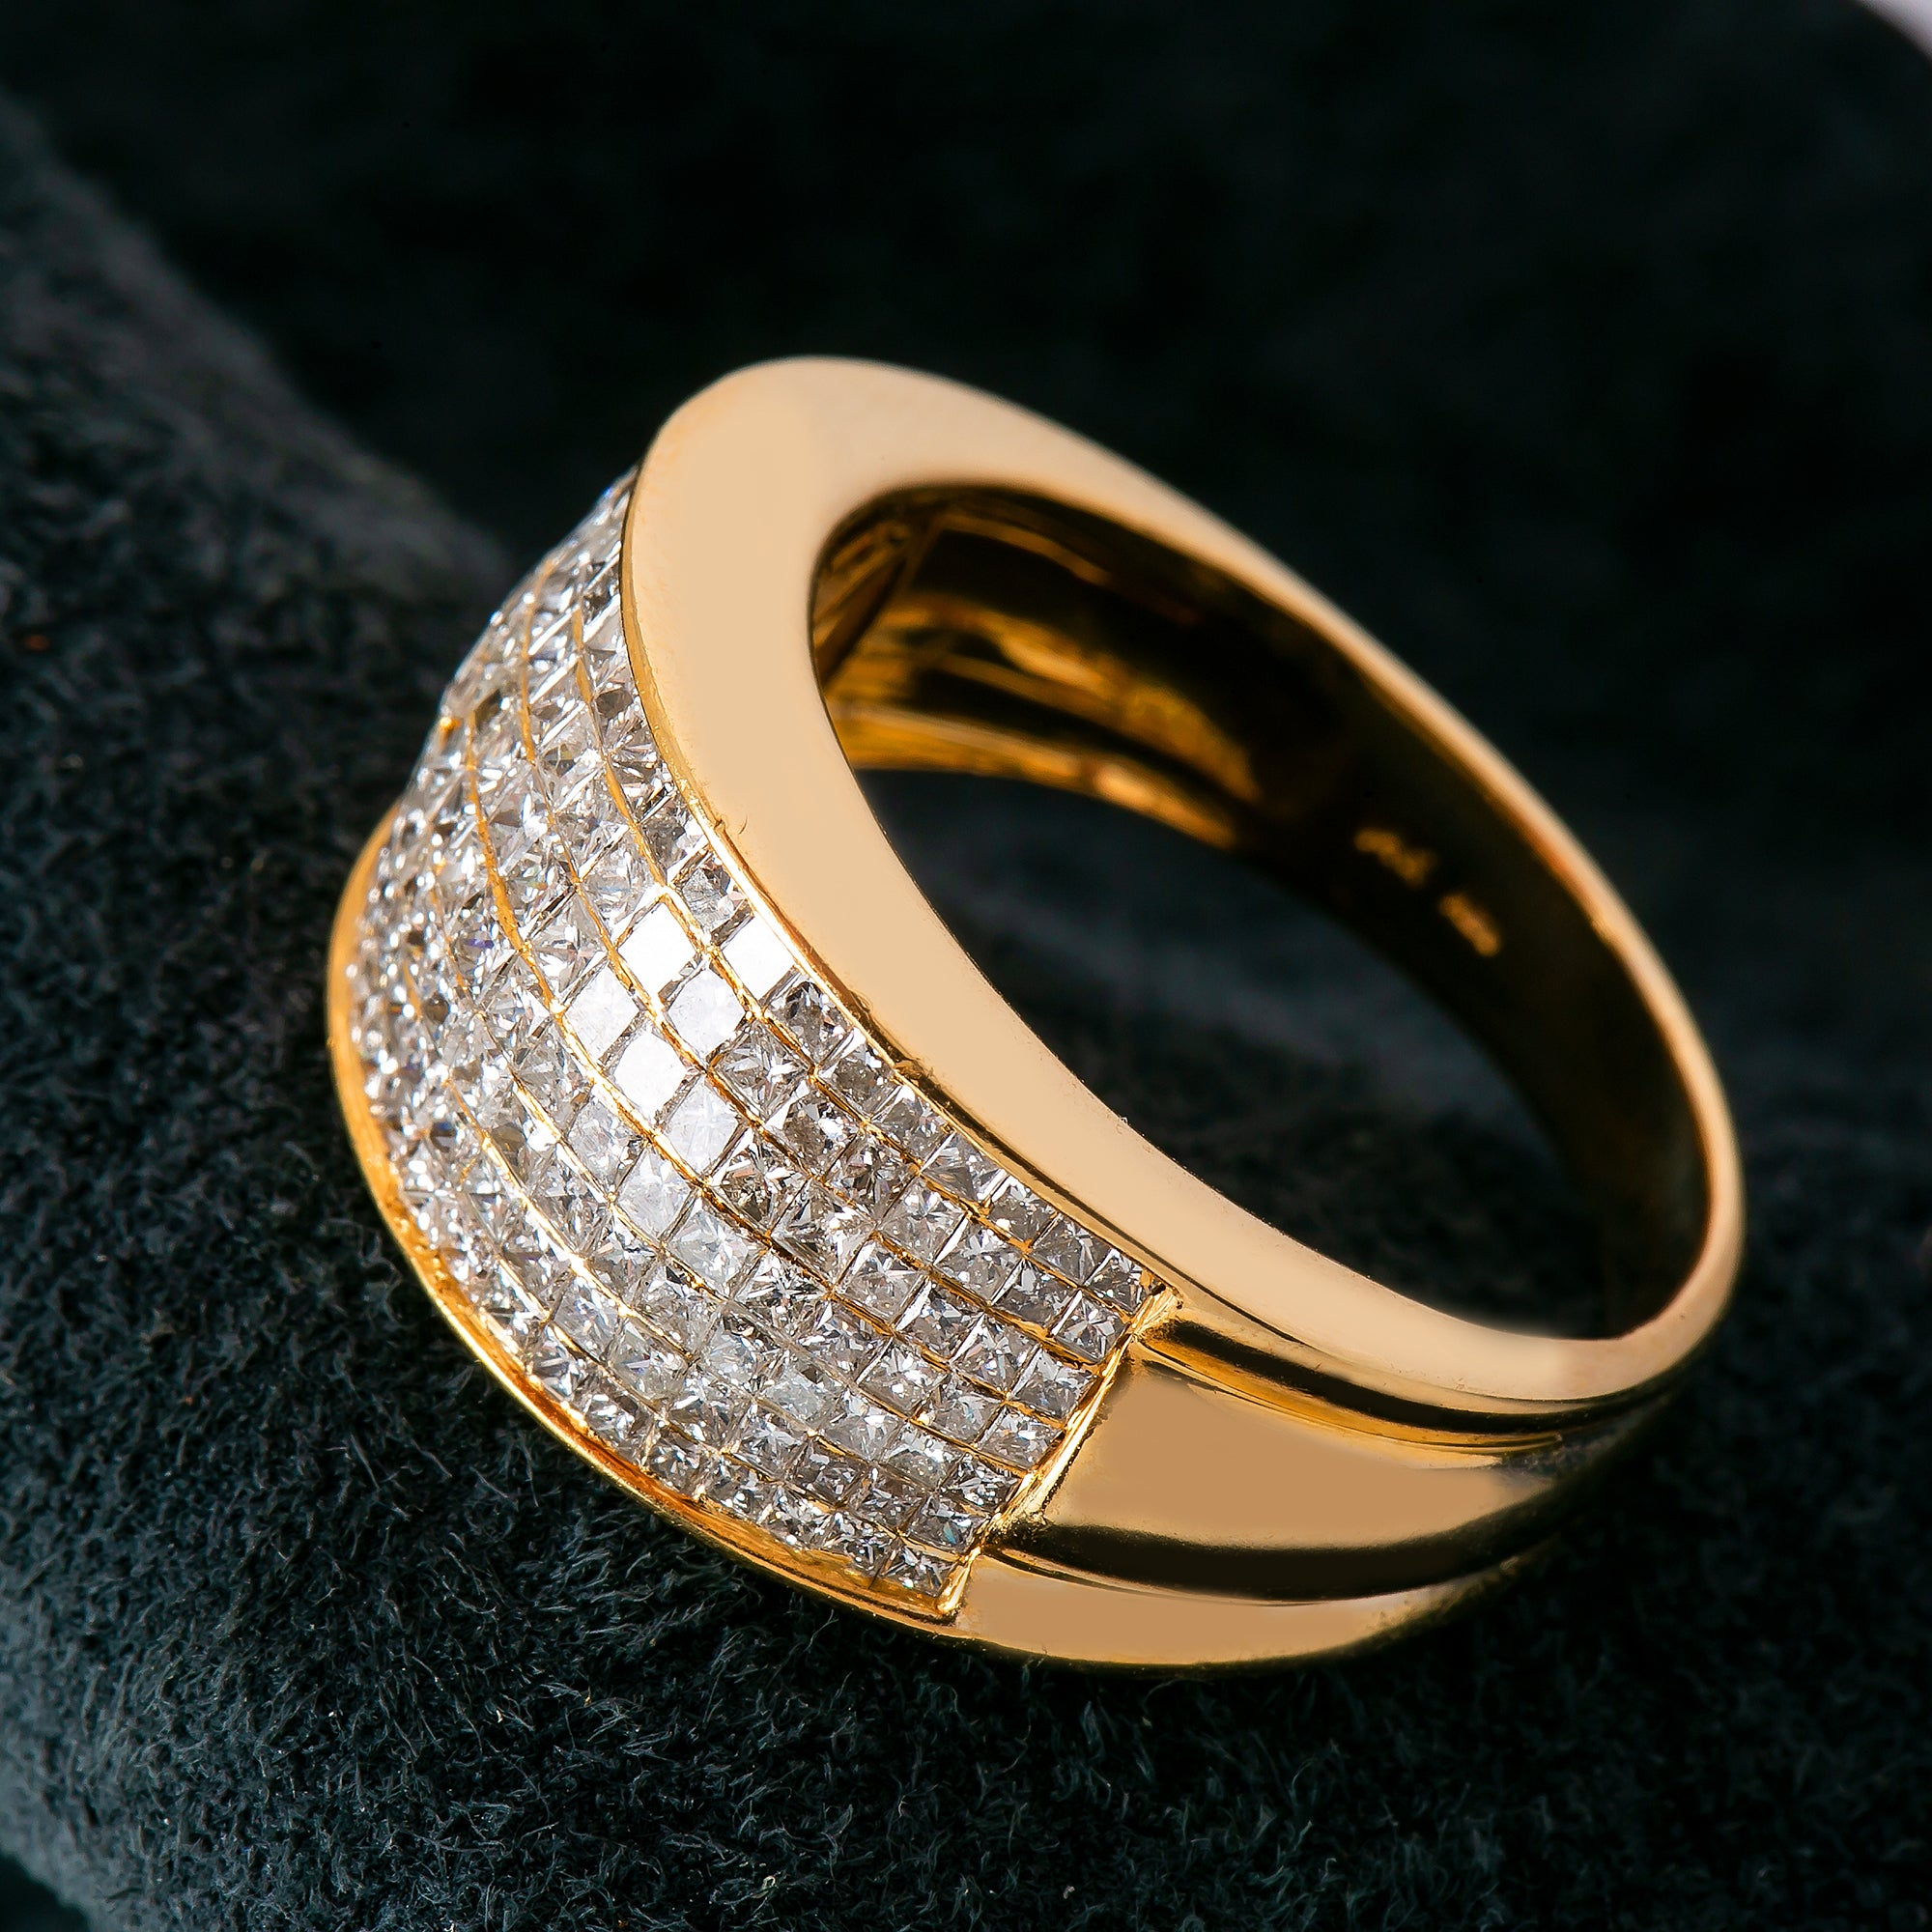 14K YELLOW GOLD MEN'S RING WITH 2.00 CT DIAMONDS